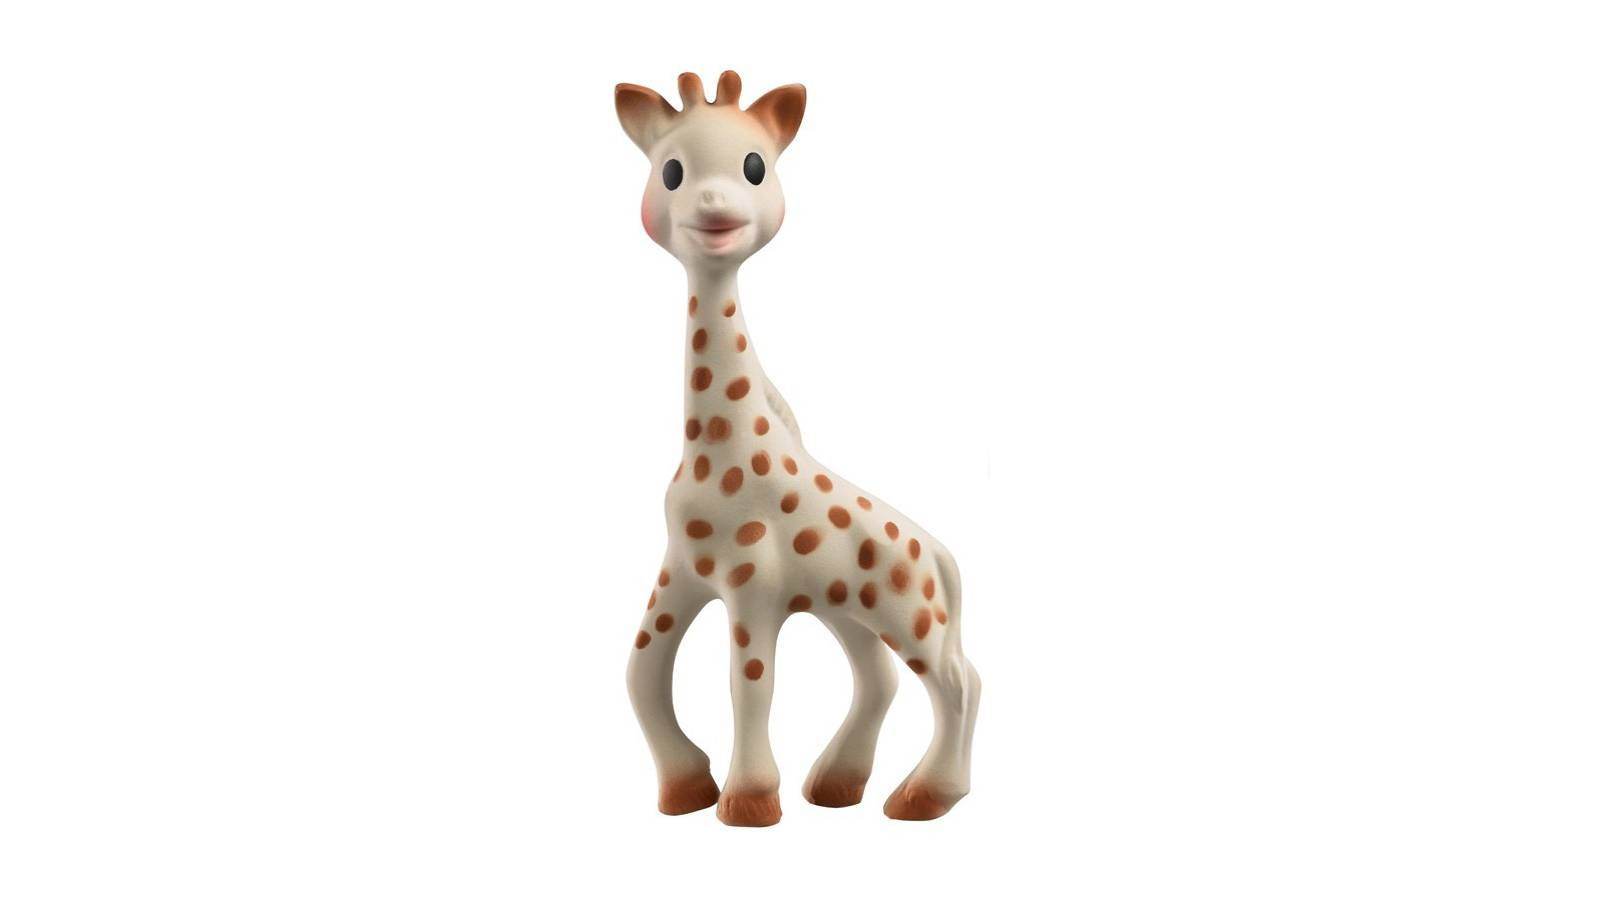 Babies-BUYERS'GUIDE-Top-Teethers-to-soothe-munchkin's-sore-gums-SOPHIE-THE-GIRAFFE